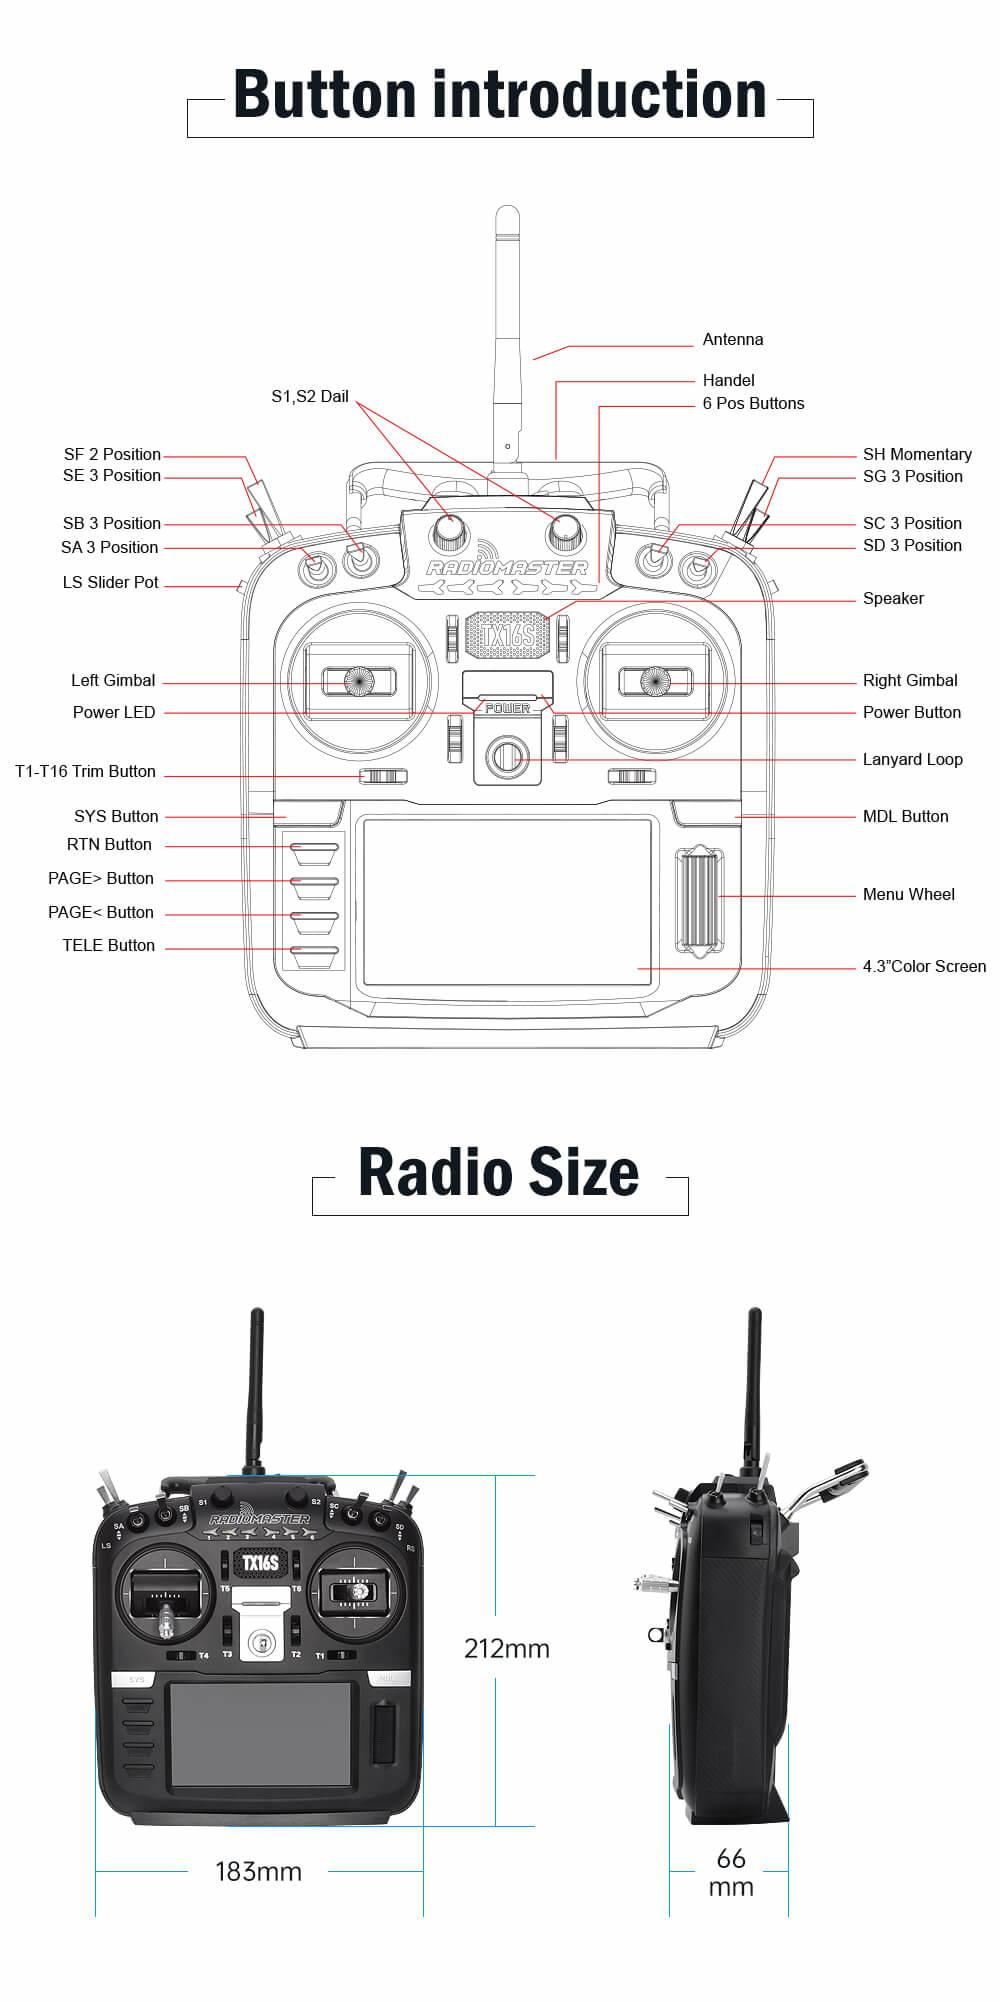 dimensions of the radiomaster tx16s transmitter